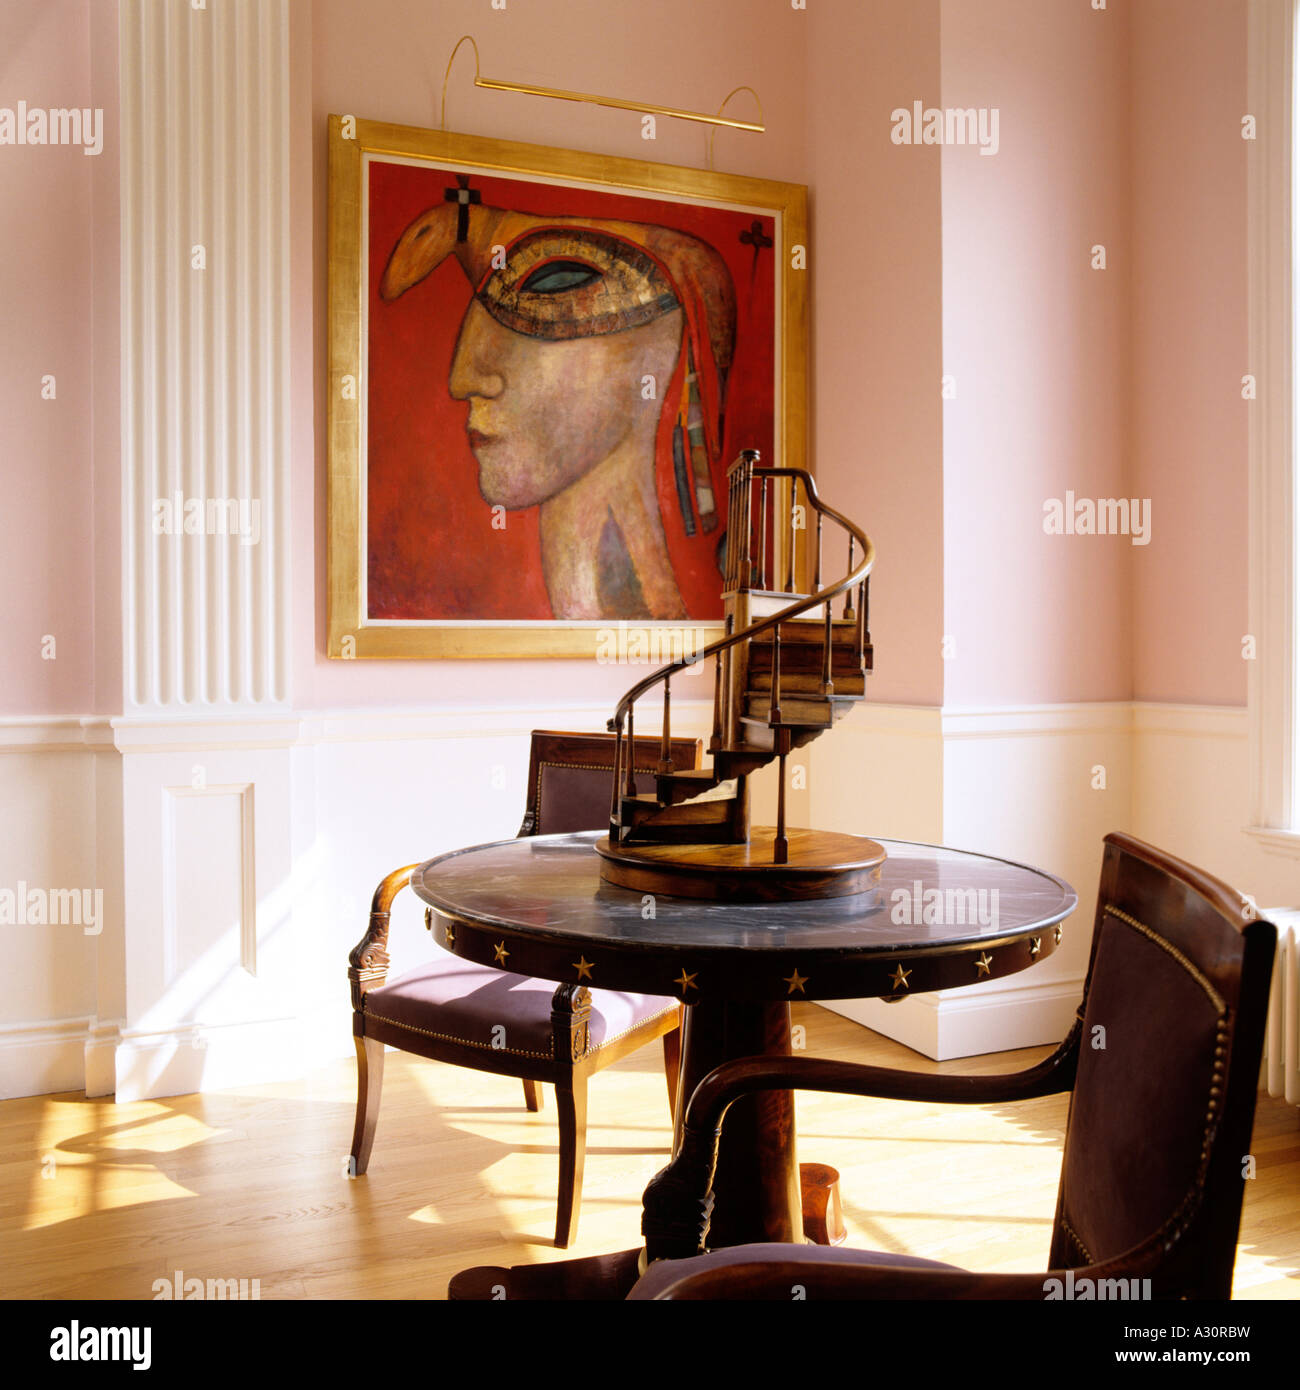 Wooden chairs at circular table with spiral step sculpture and surrealist  artwork - Stock Image